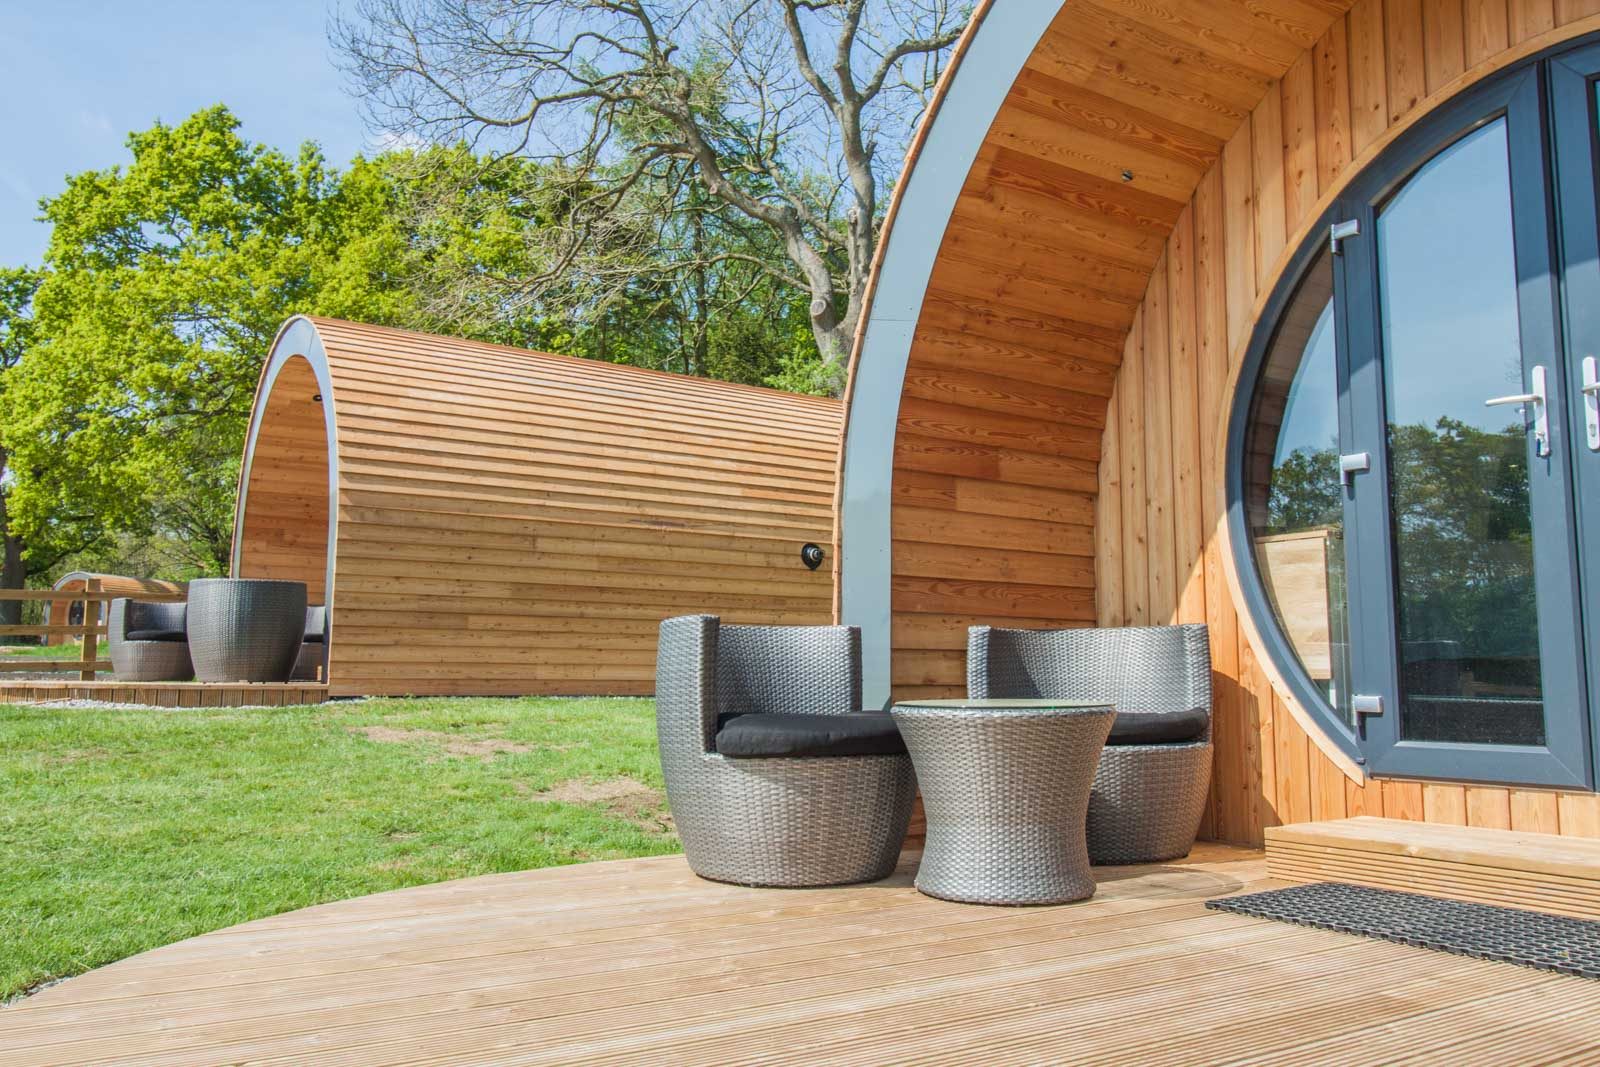 Glamping Pods at High Oaks Grange